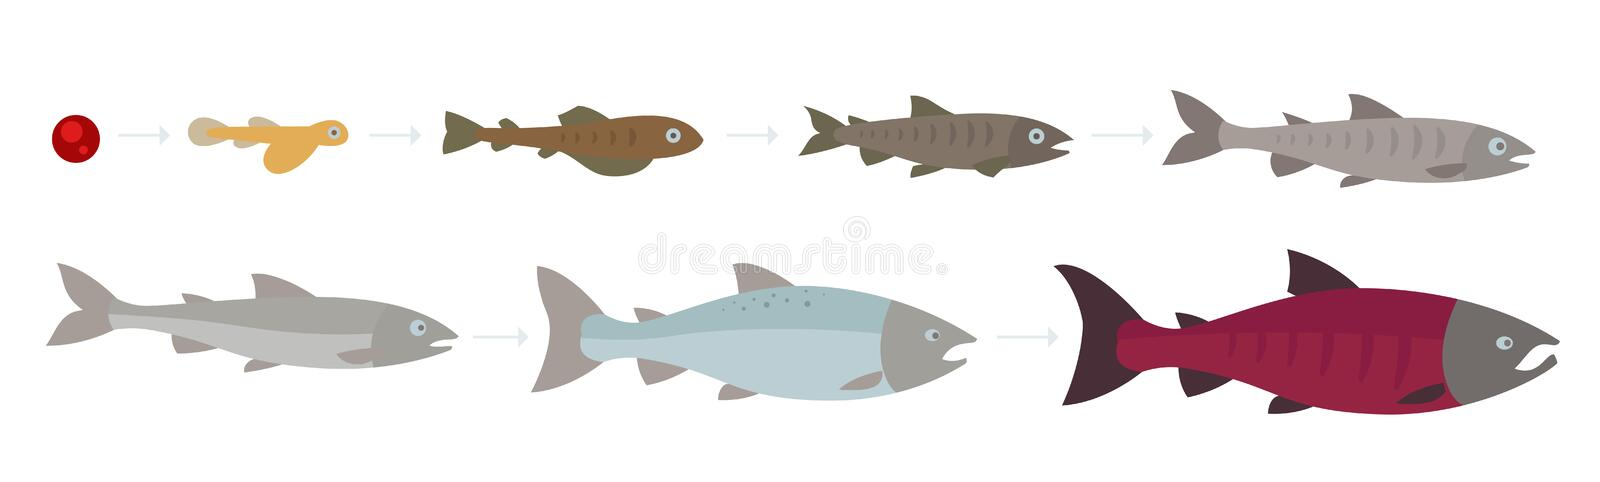 Life cycle of the Atlantic Salmon. Stages of salmon fish growth set. Coho salmon growth from egg to fry. Sockeye. Aquaculture grow up animation progression stock illustration